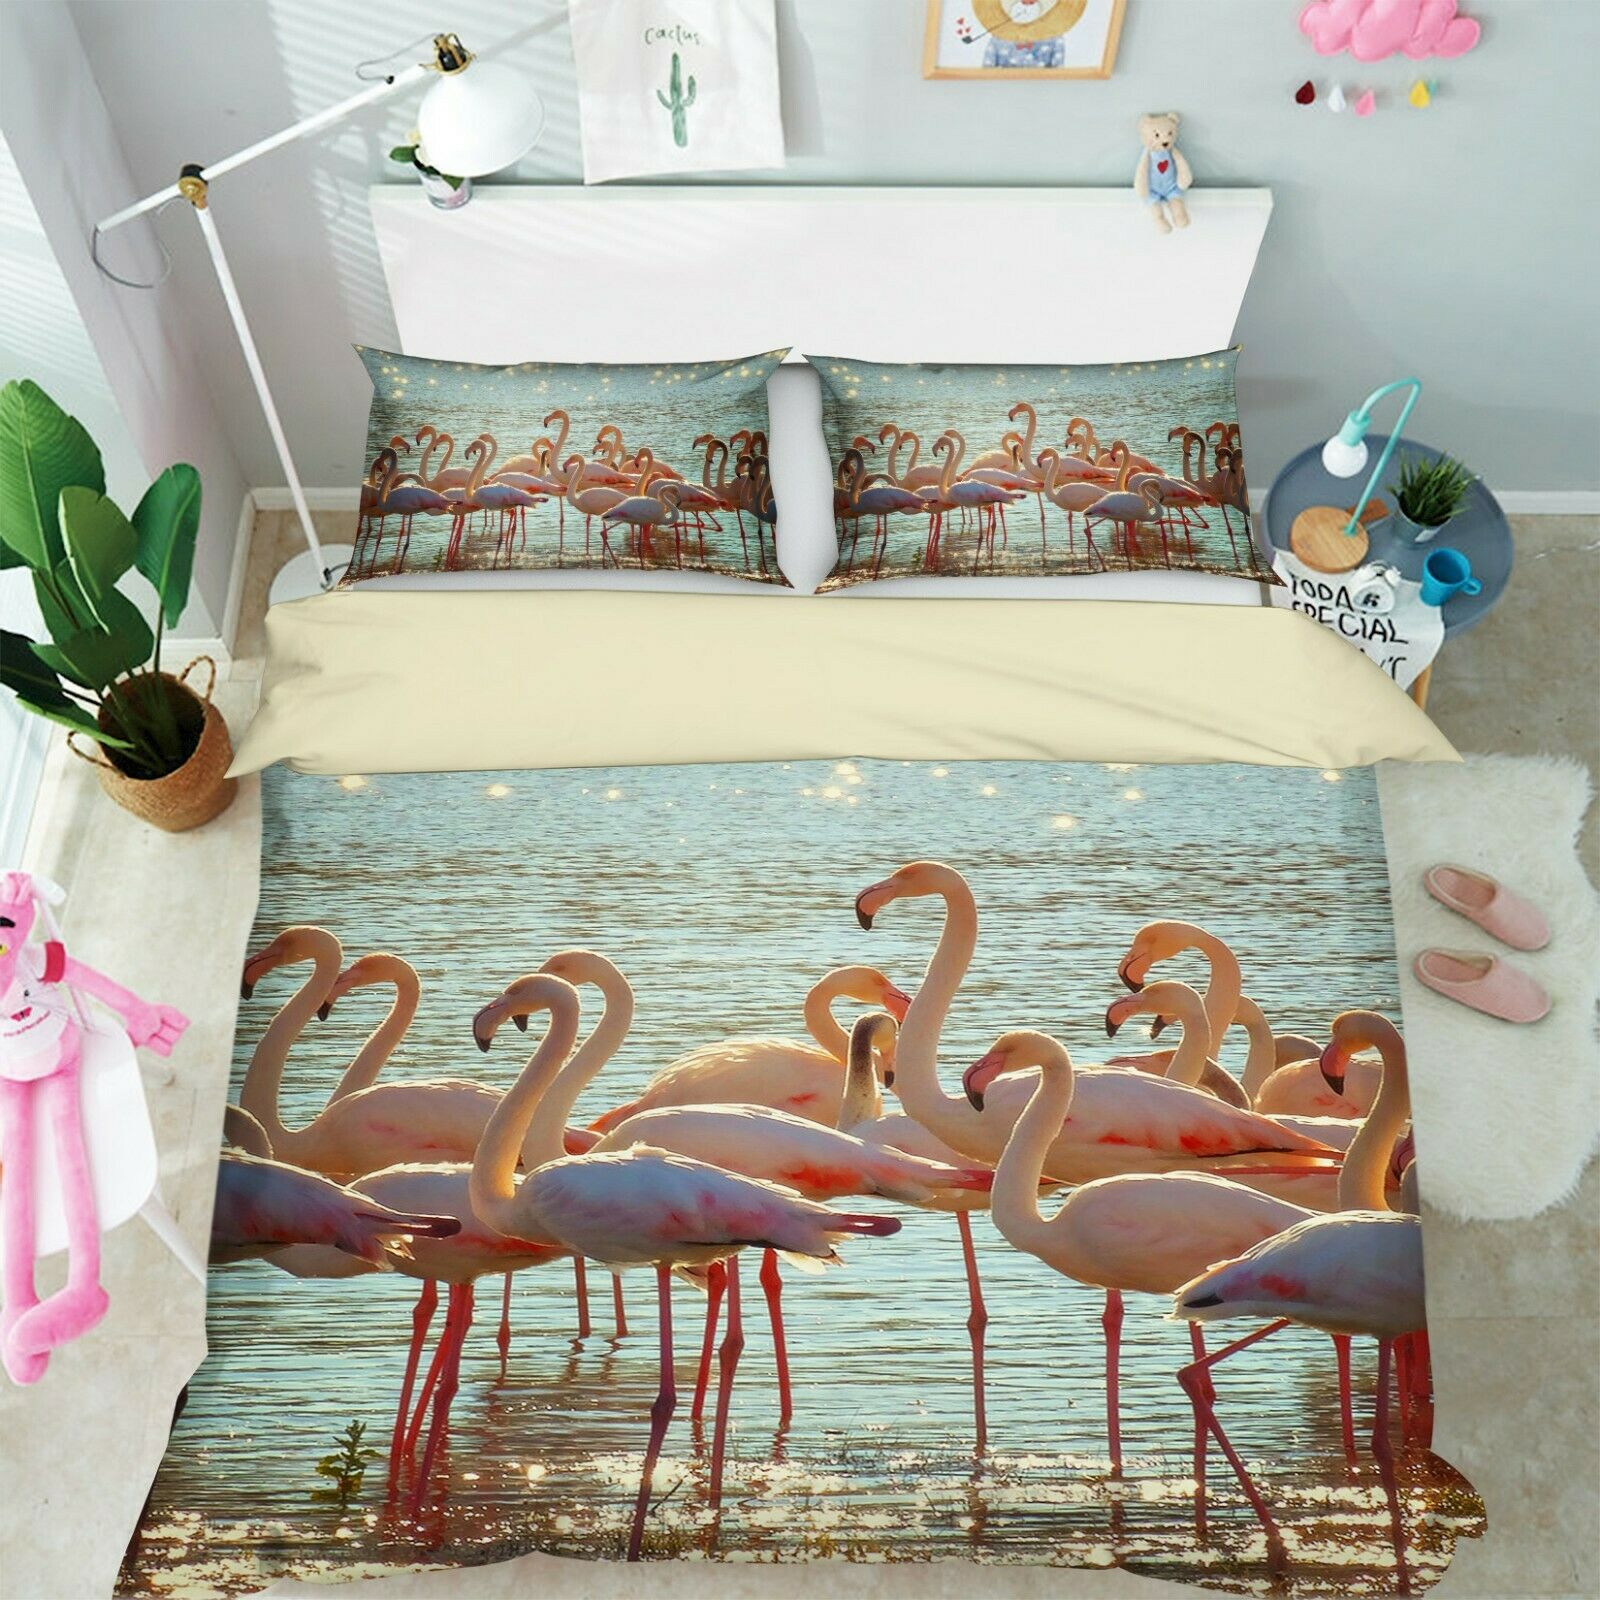 3D Flamingos I32 Animal Bed Pillowcases Quilt Duvet Cover Queen King Angelia